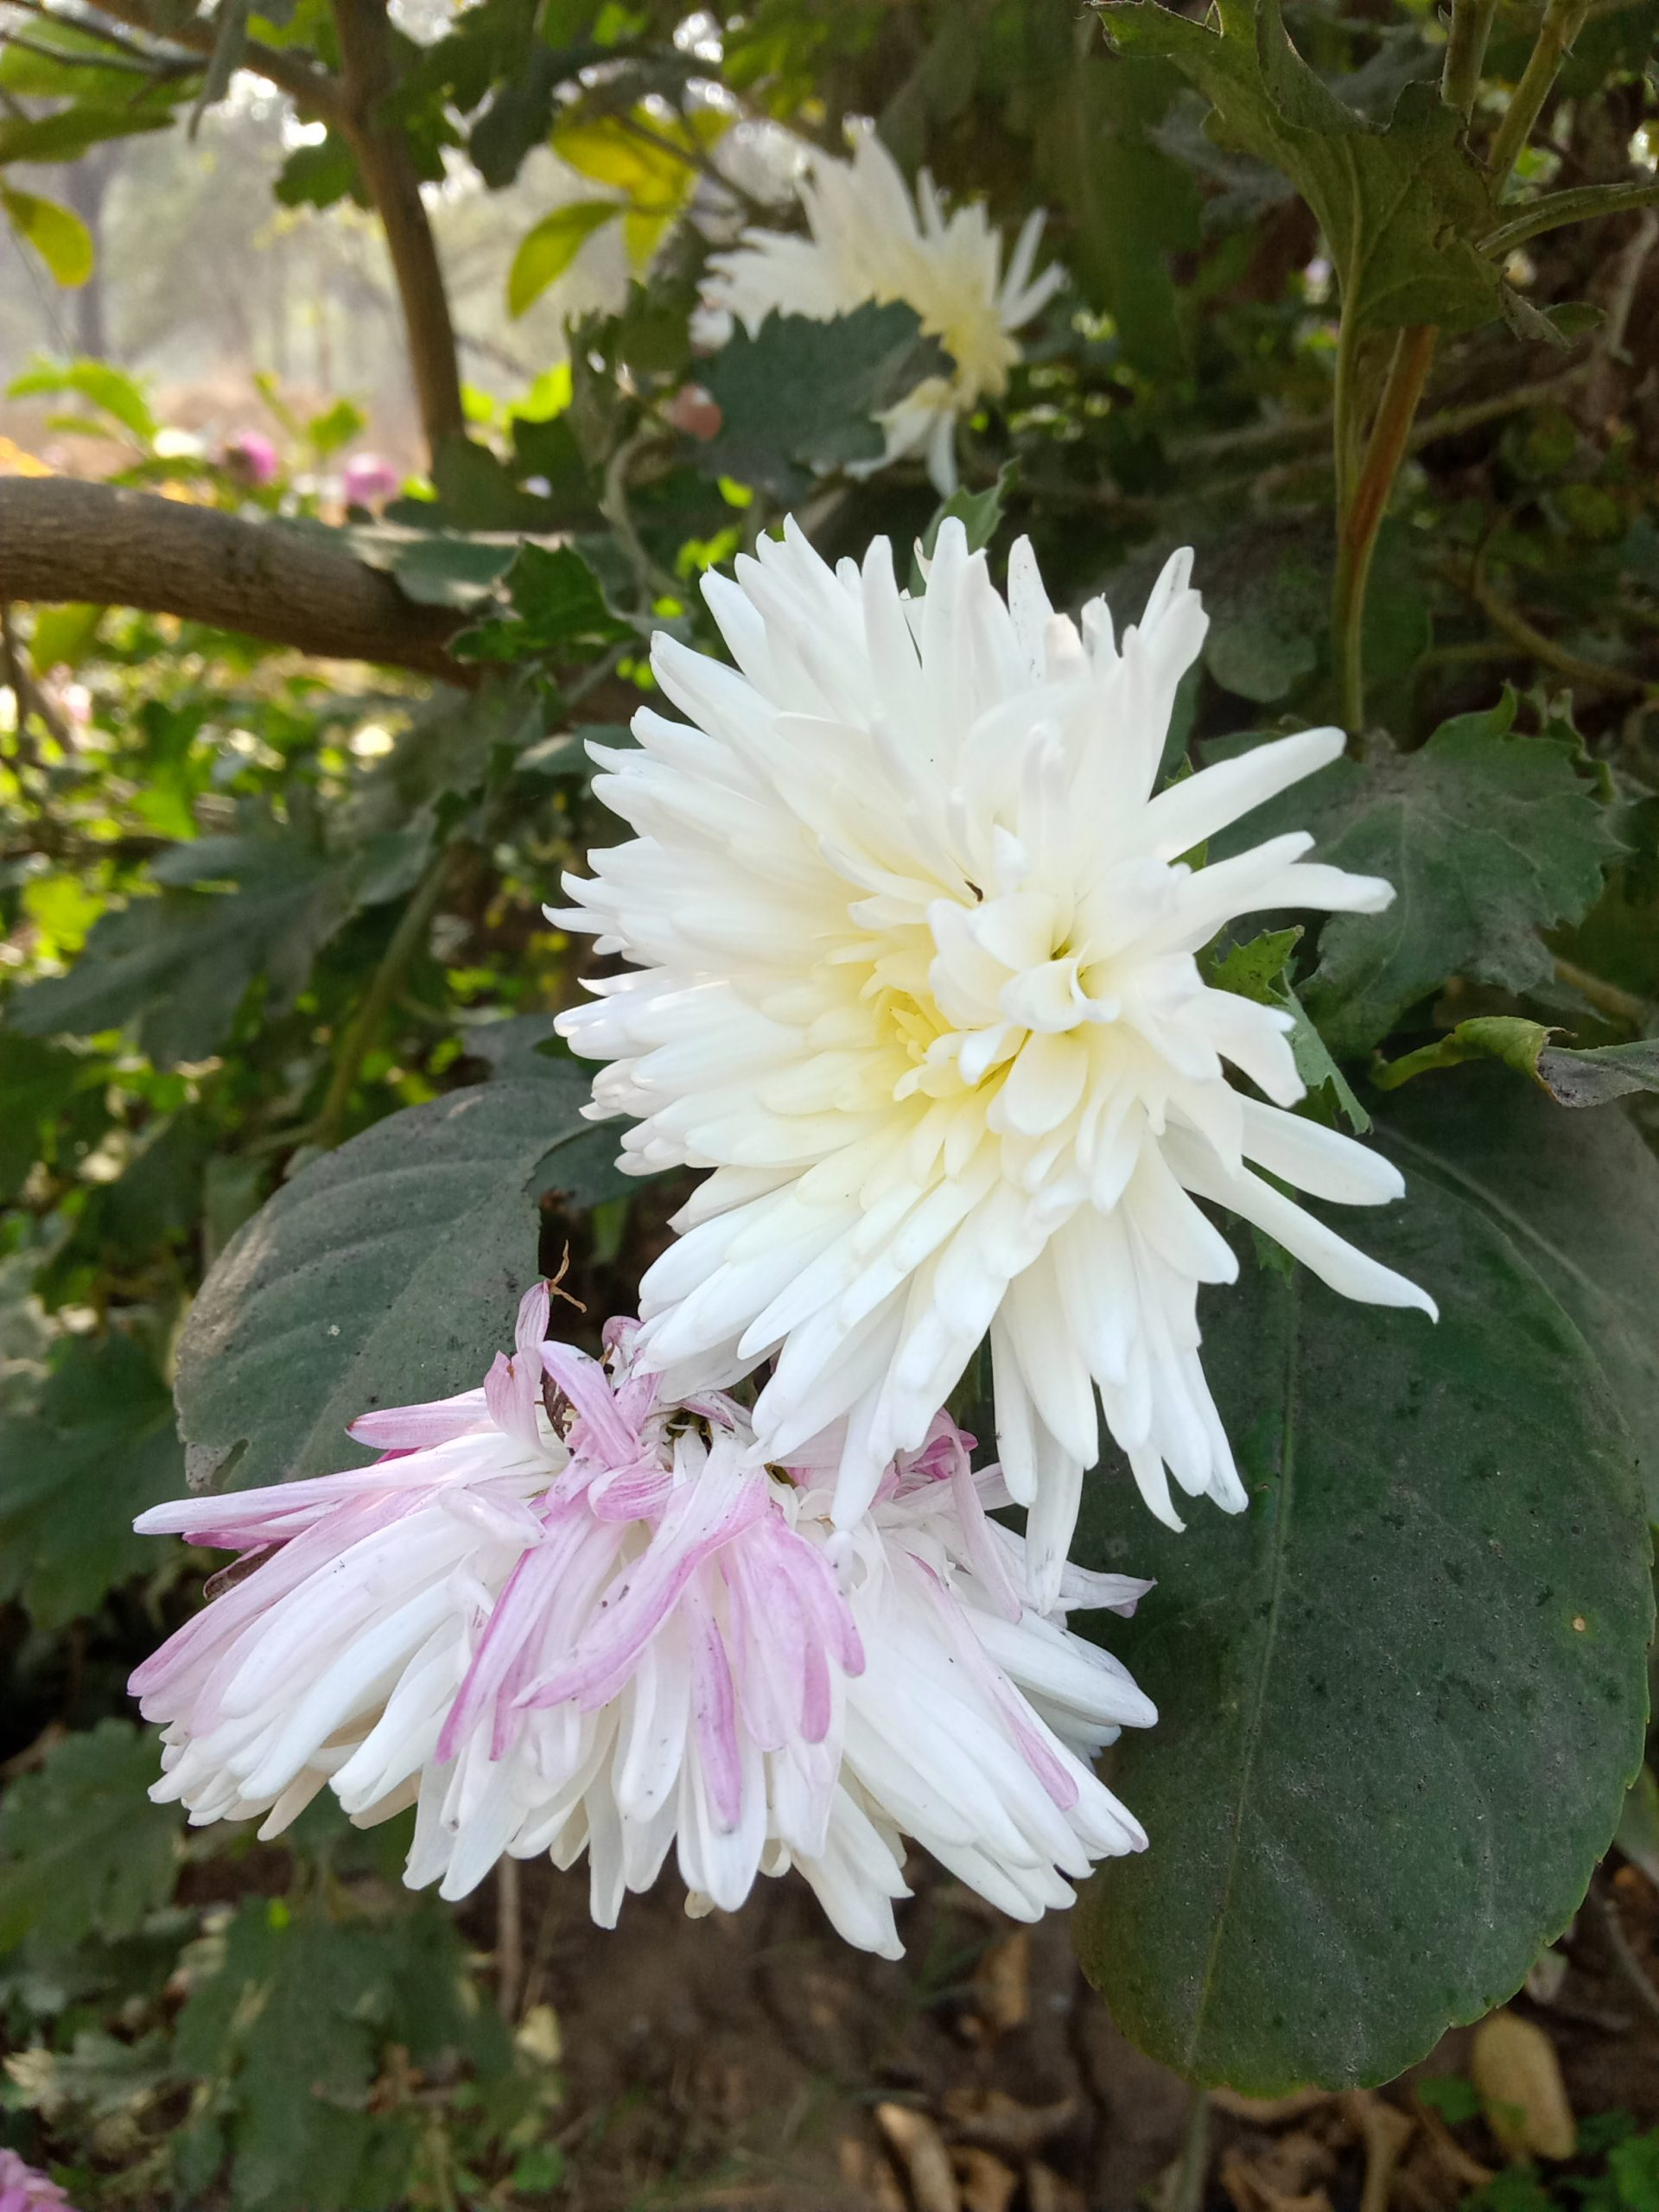 A white flowers